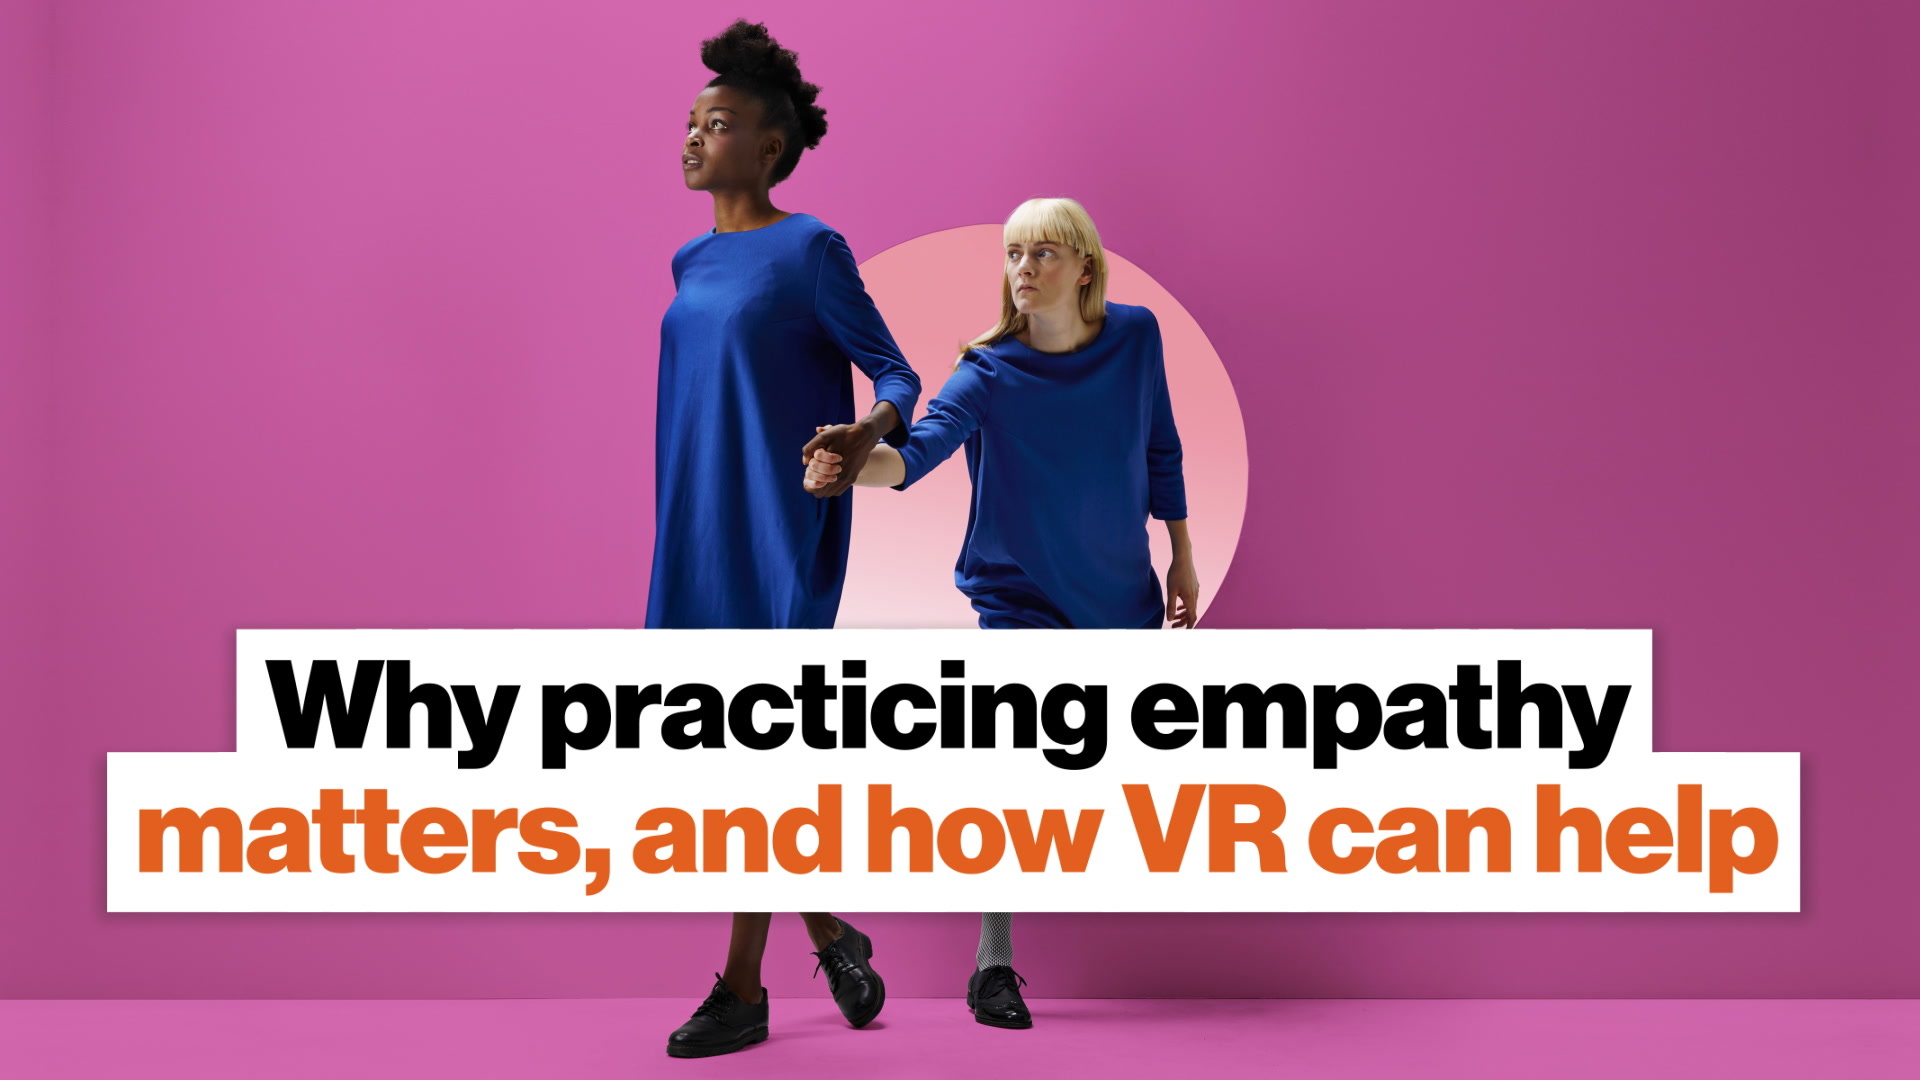 Why practicing empathy matters, and how VR can help